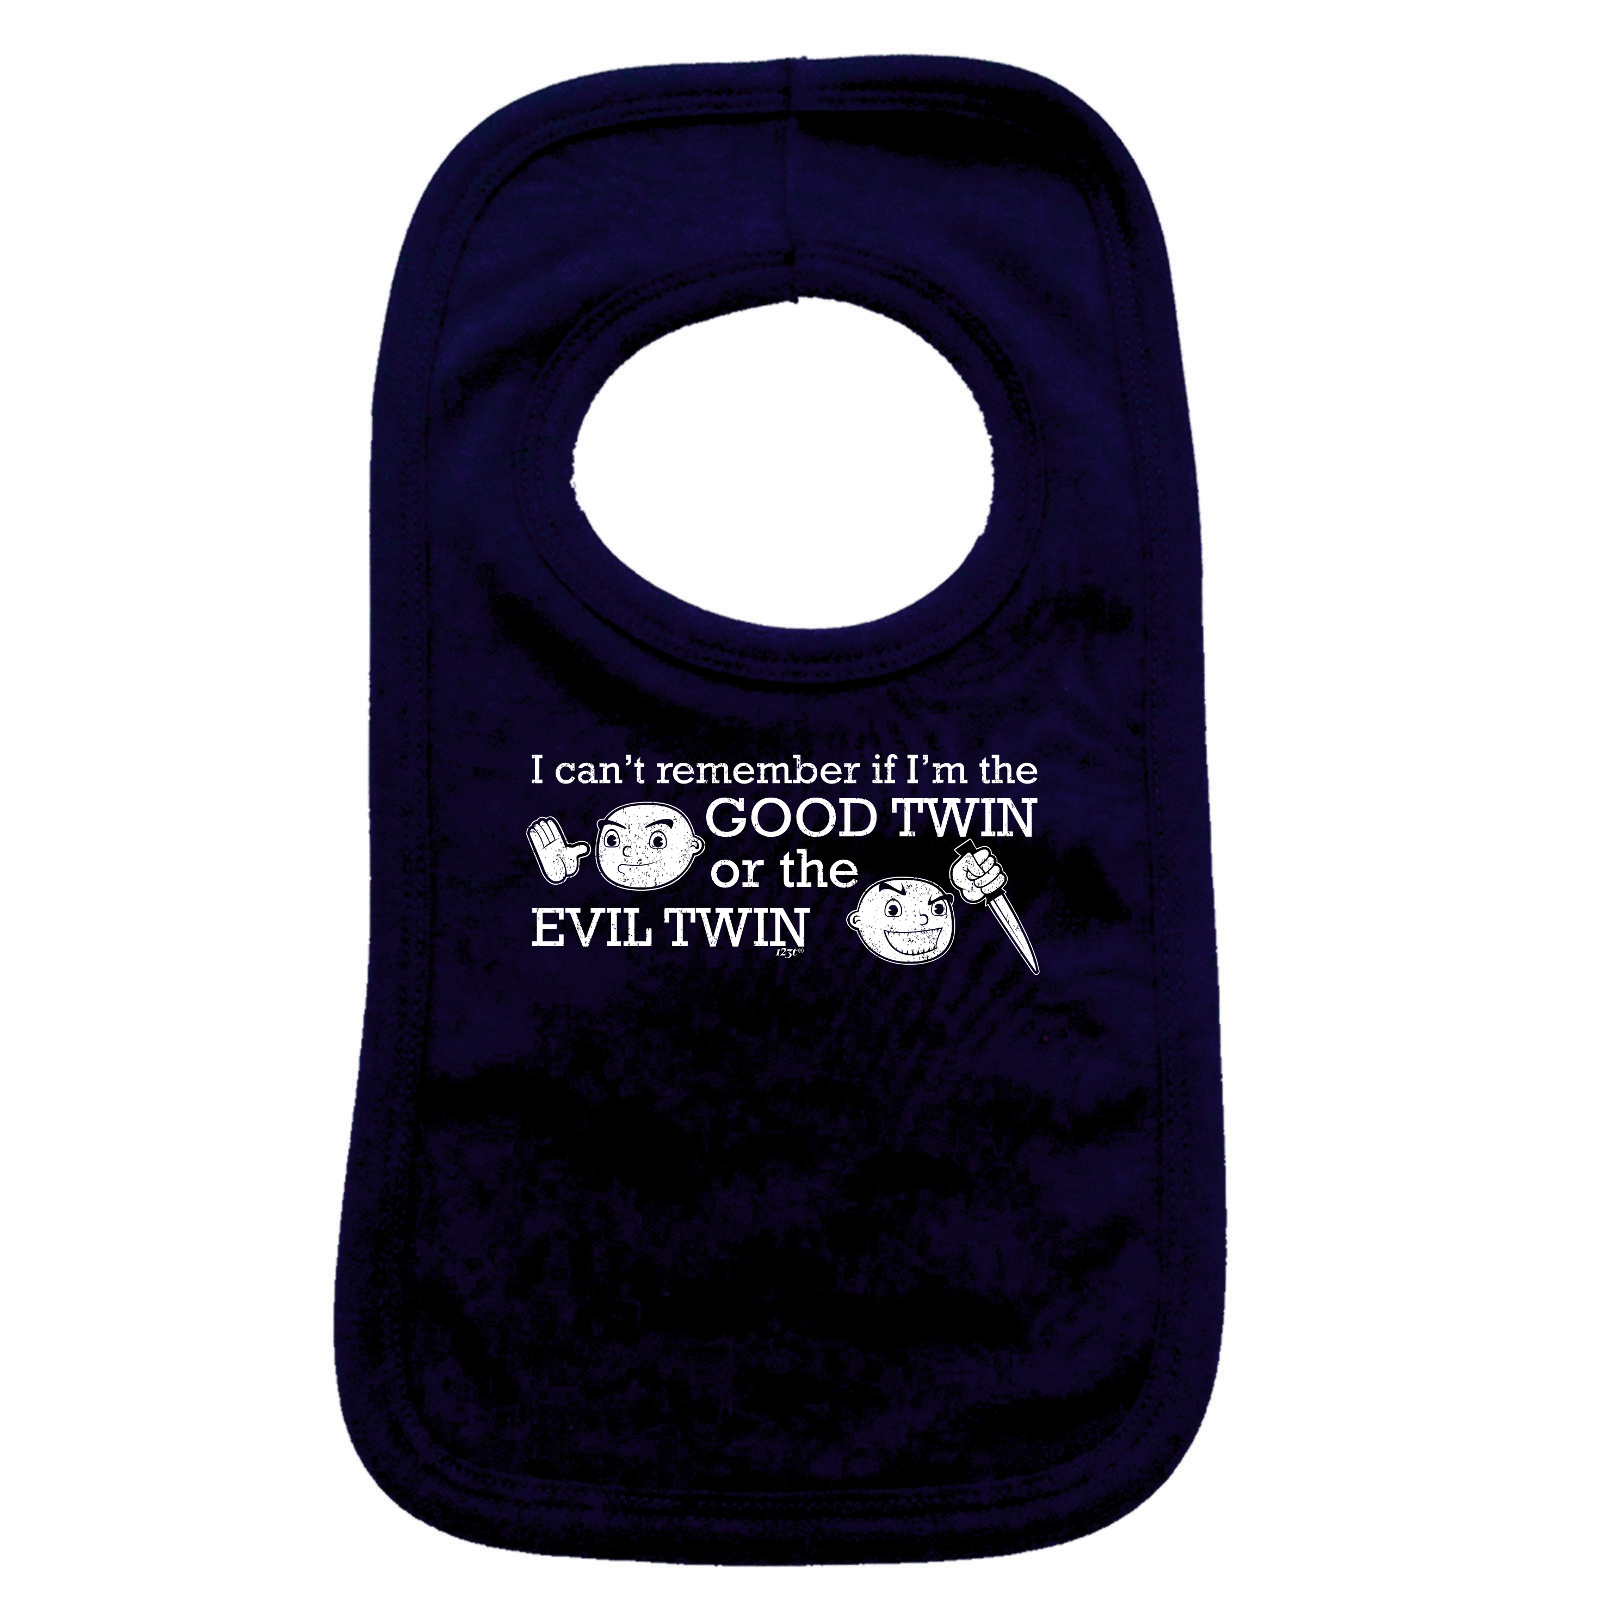 Funny Baby Infants Bib Napkin I Cant Hear You Over The Sound Of How Epic I